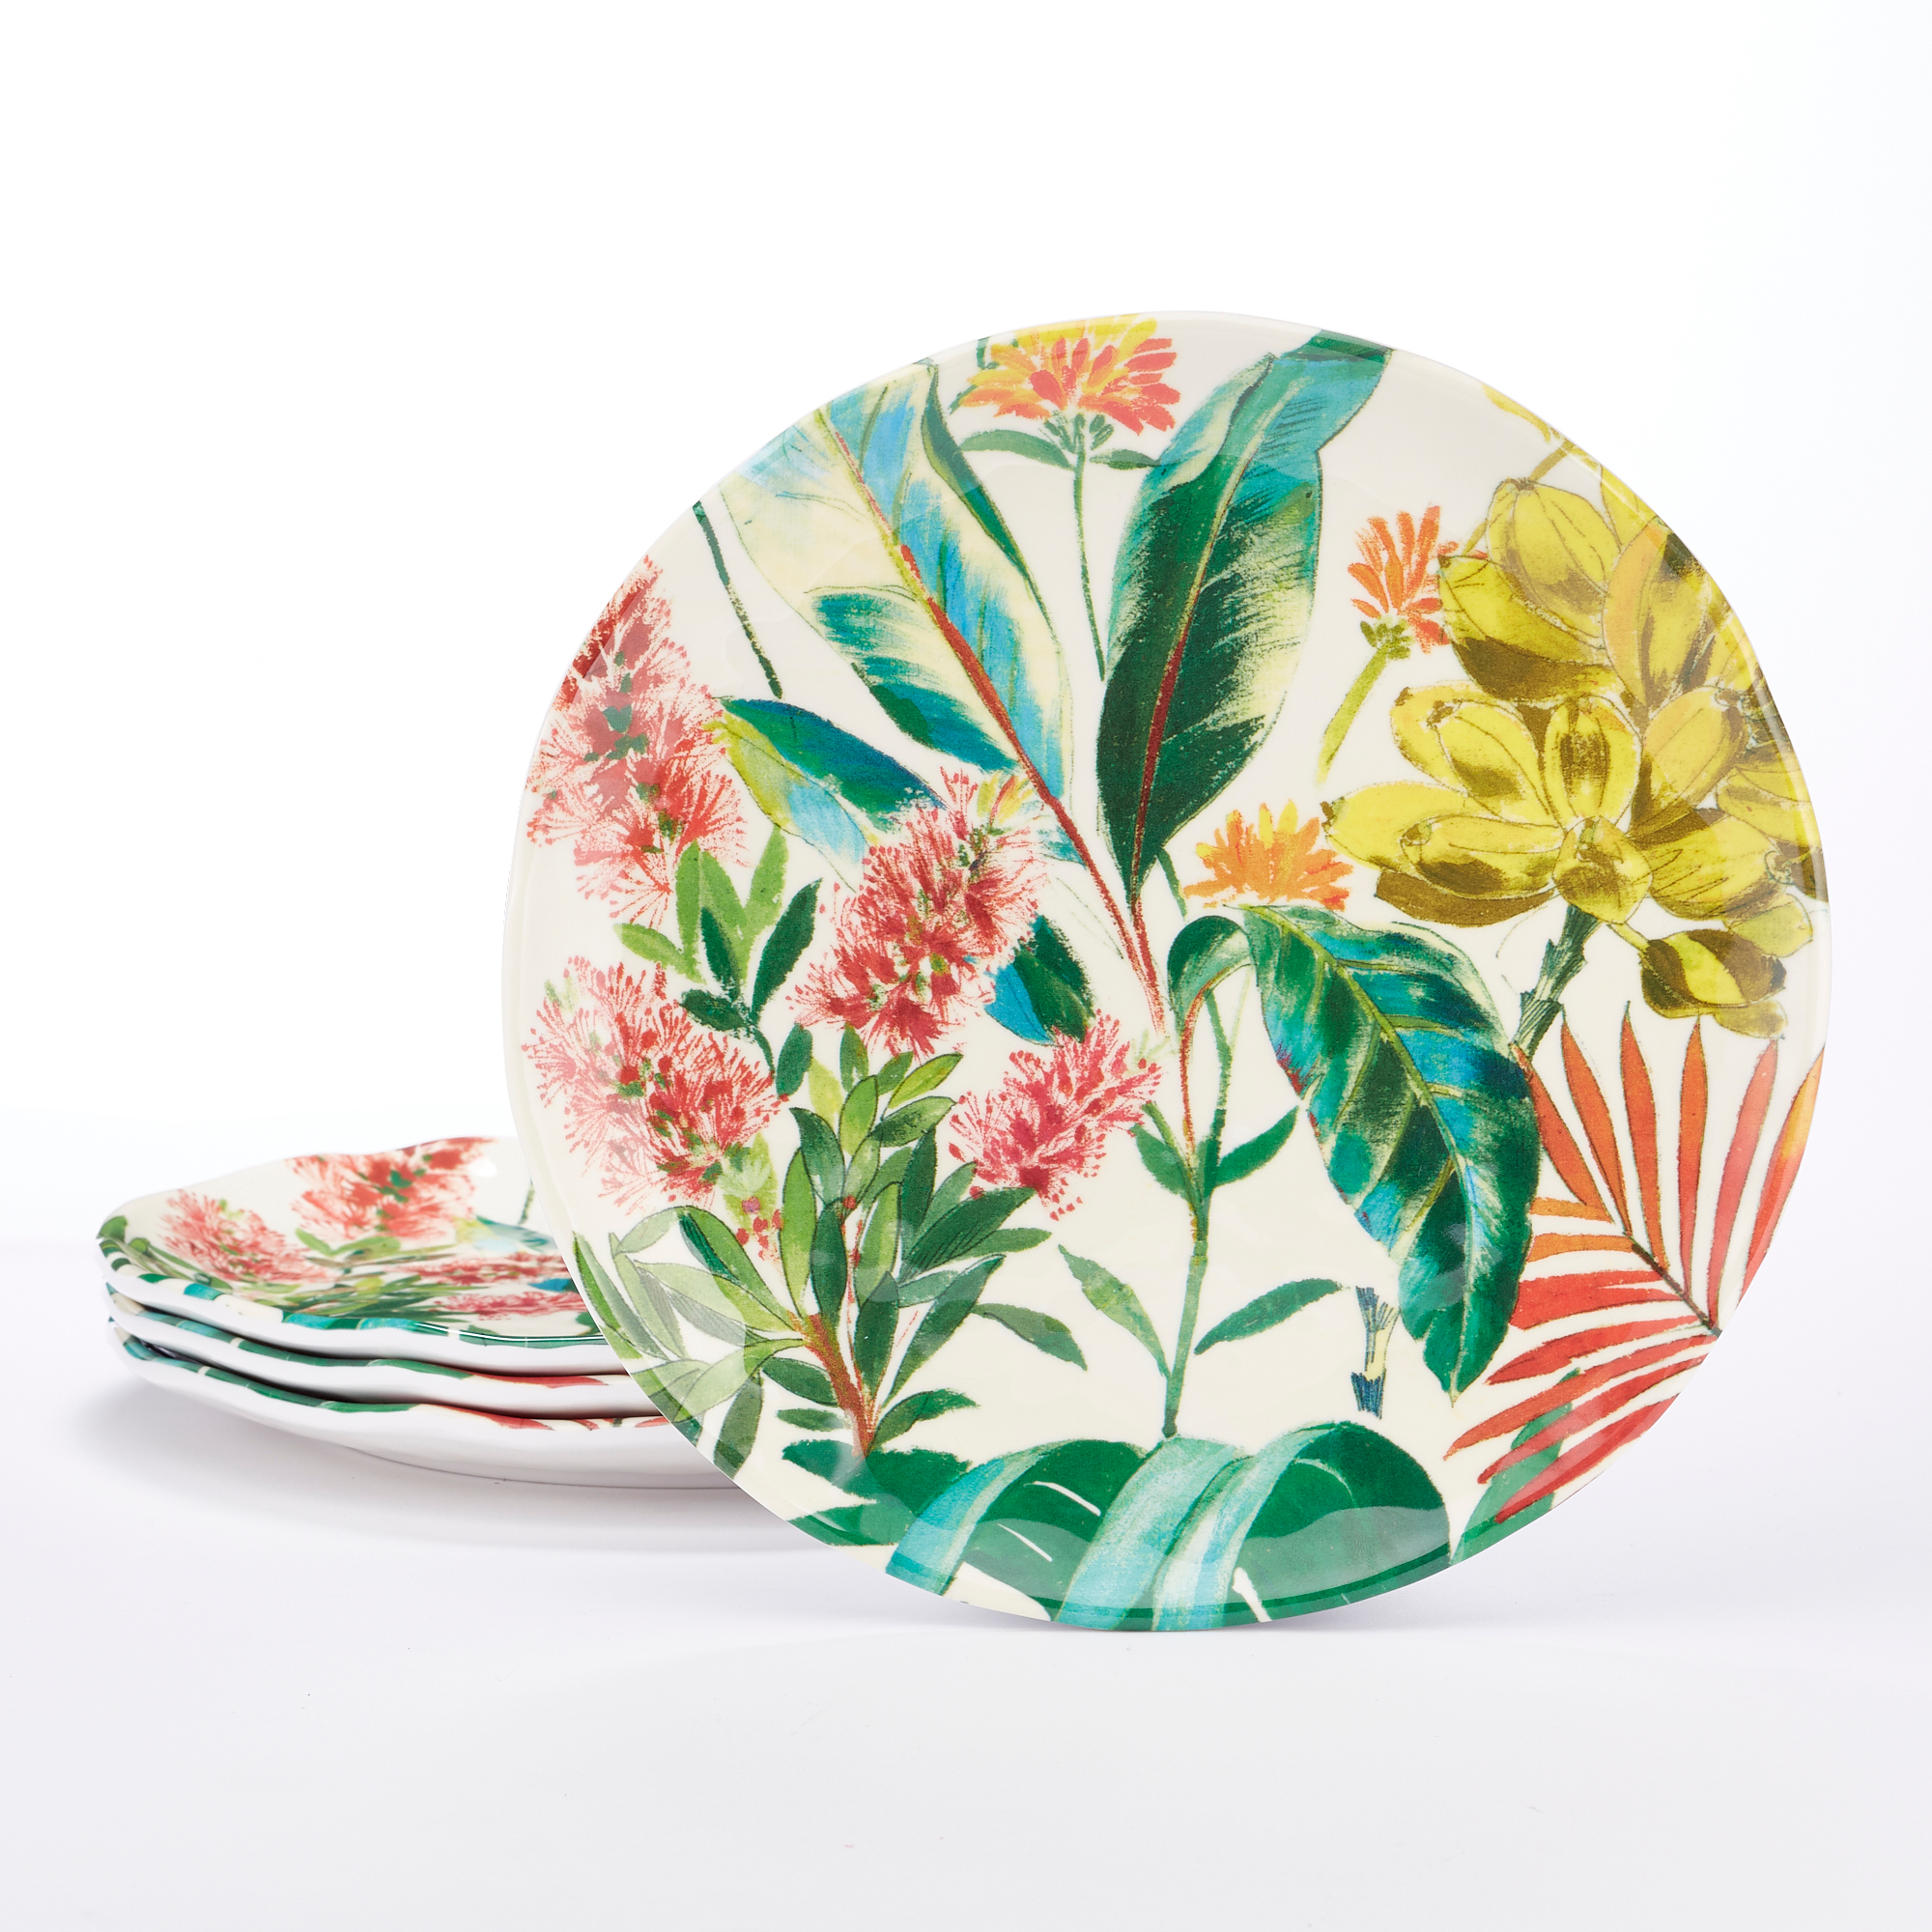 New Tropical Garden Melamine Dinnerware